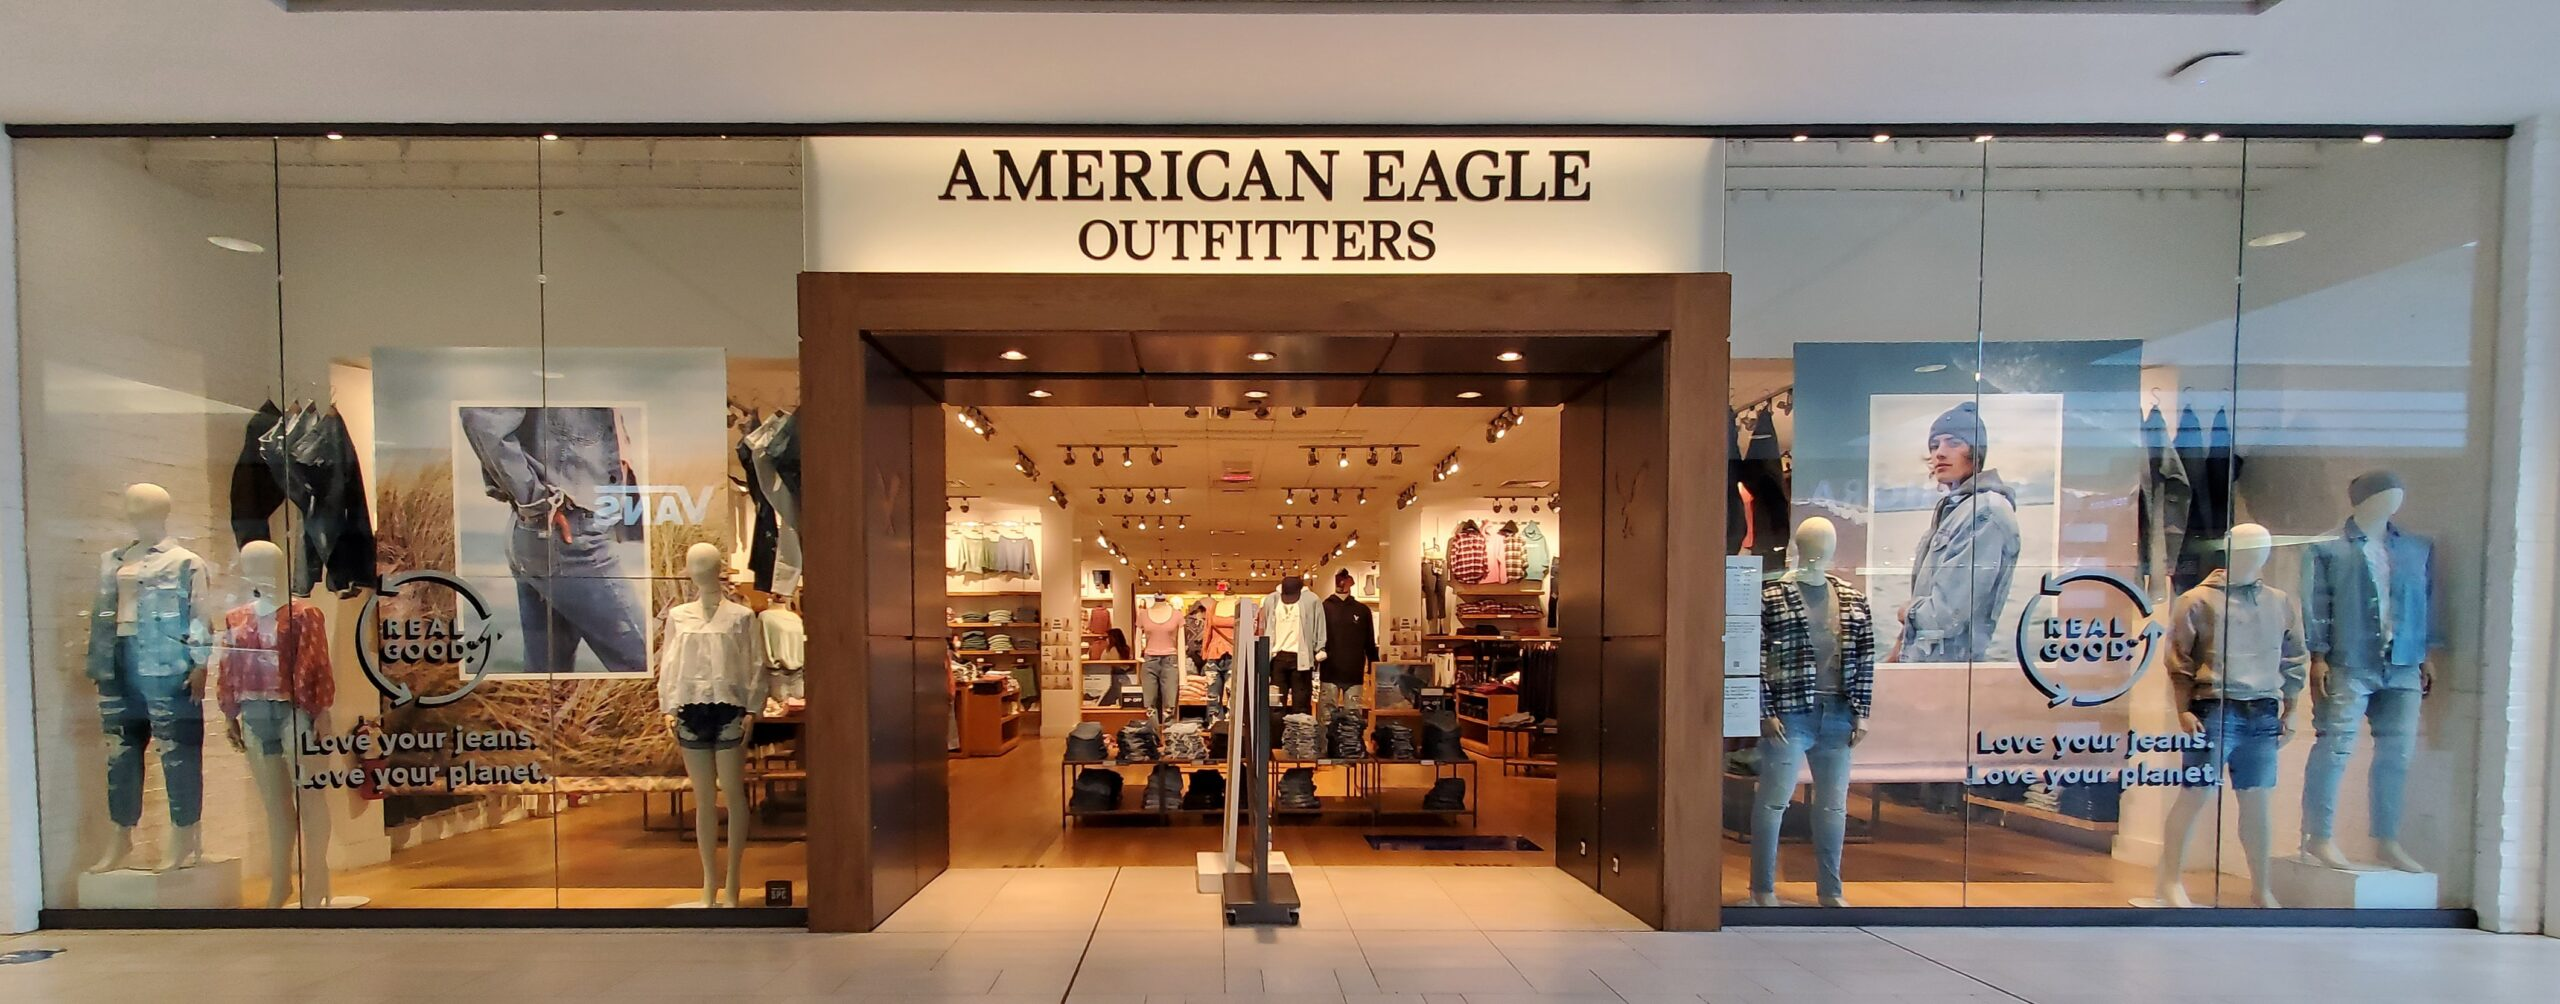 American Eagle Outfitters at CF Richmond Centre.